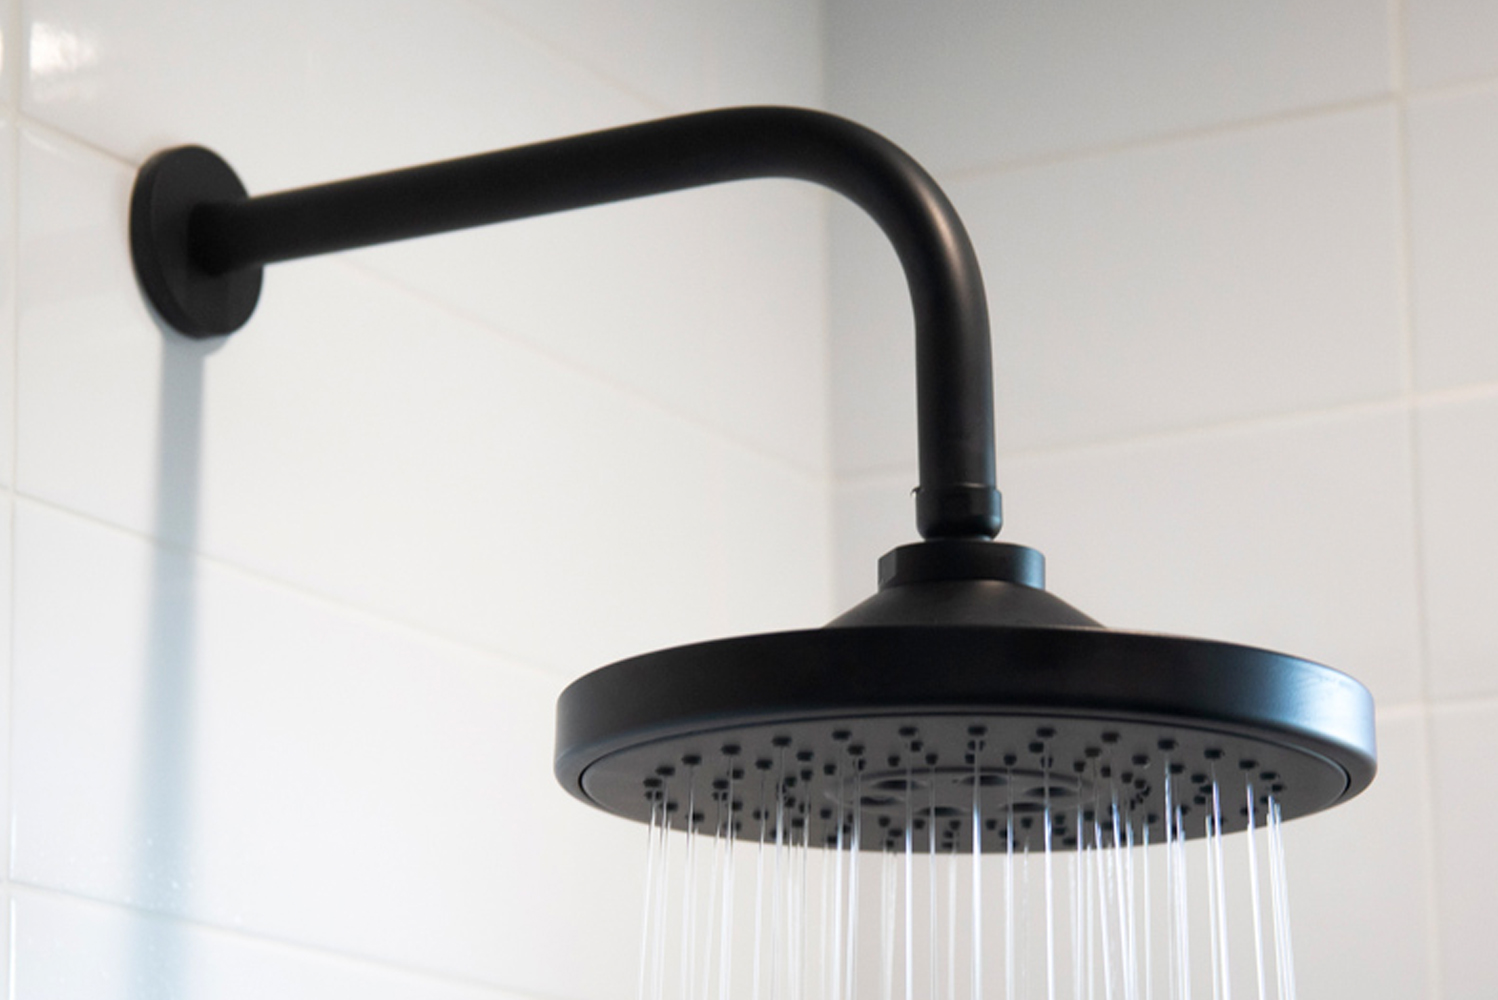 The Luxnetic showerhead is available in 27 finishes and constructed of solid brass.